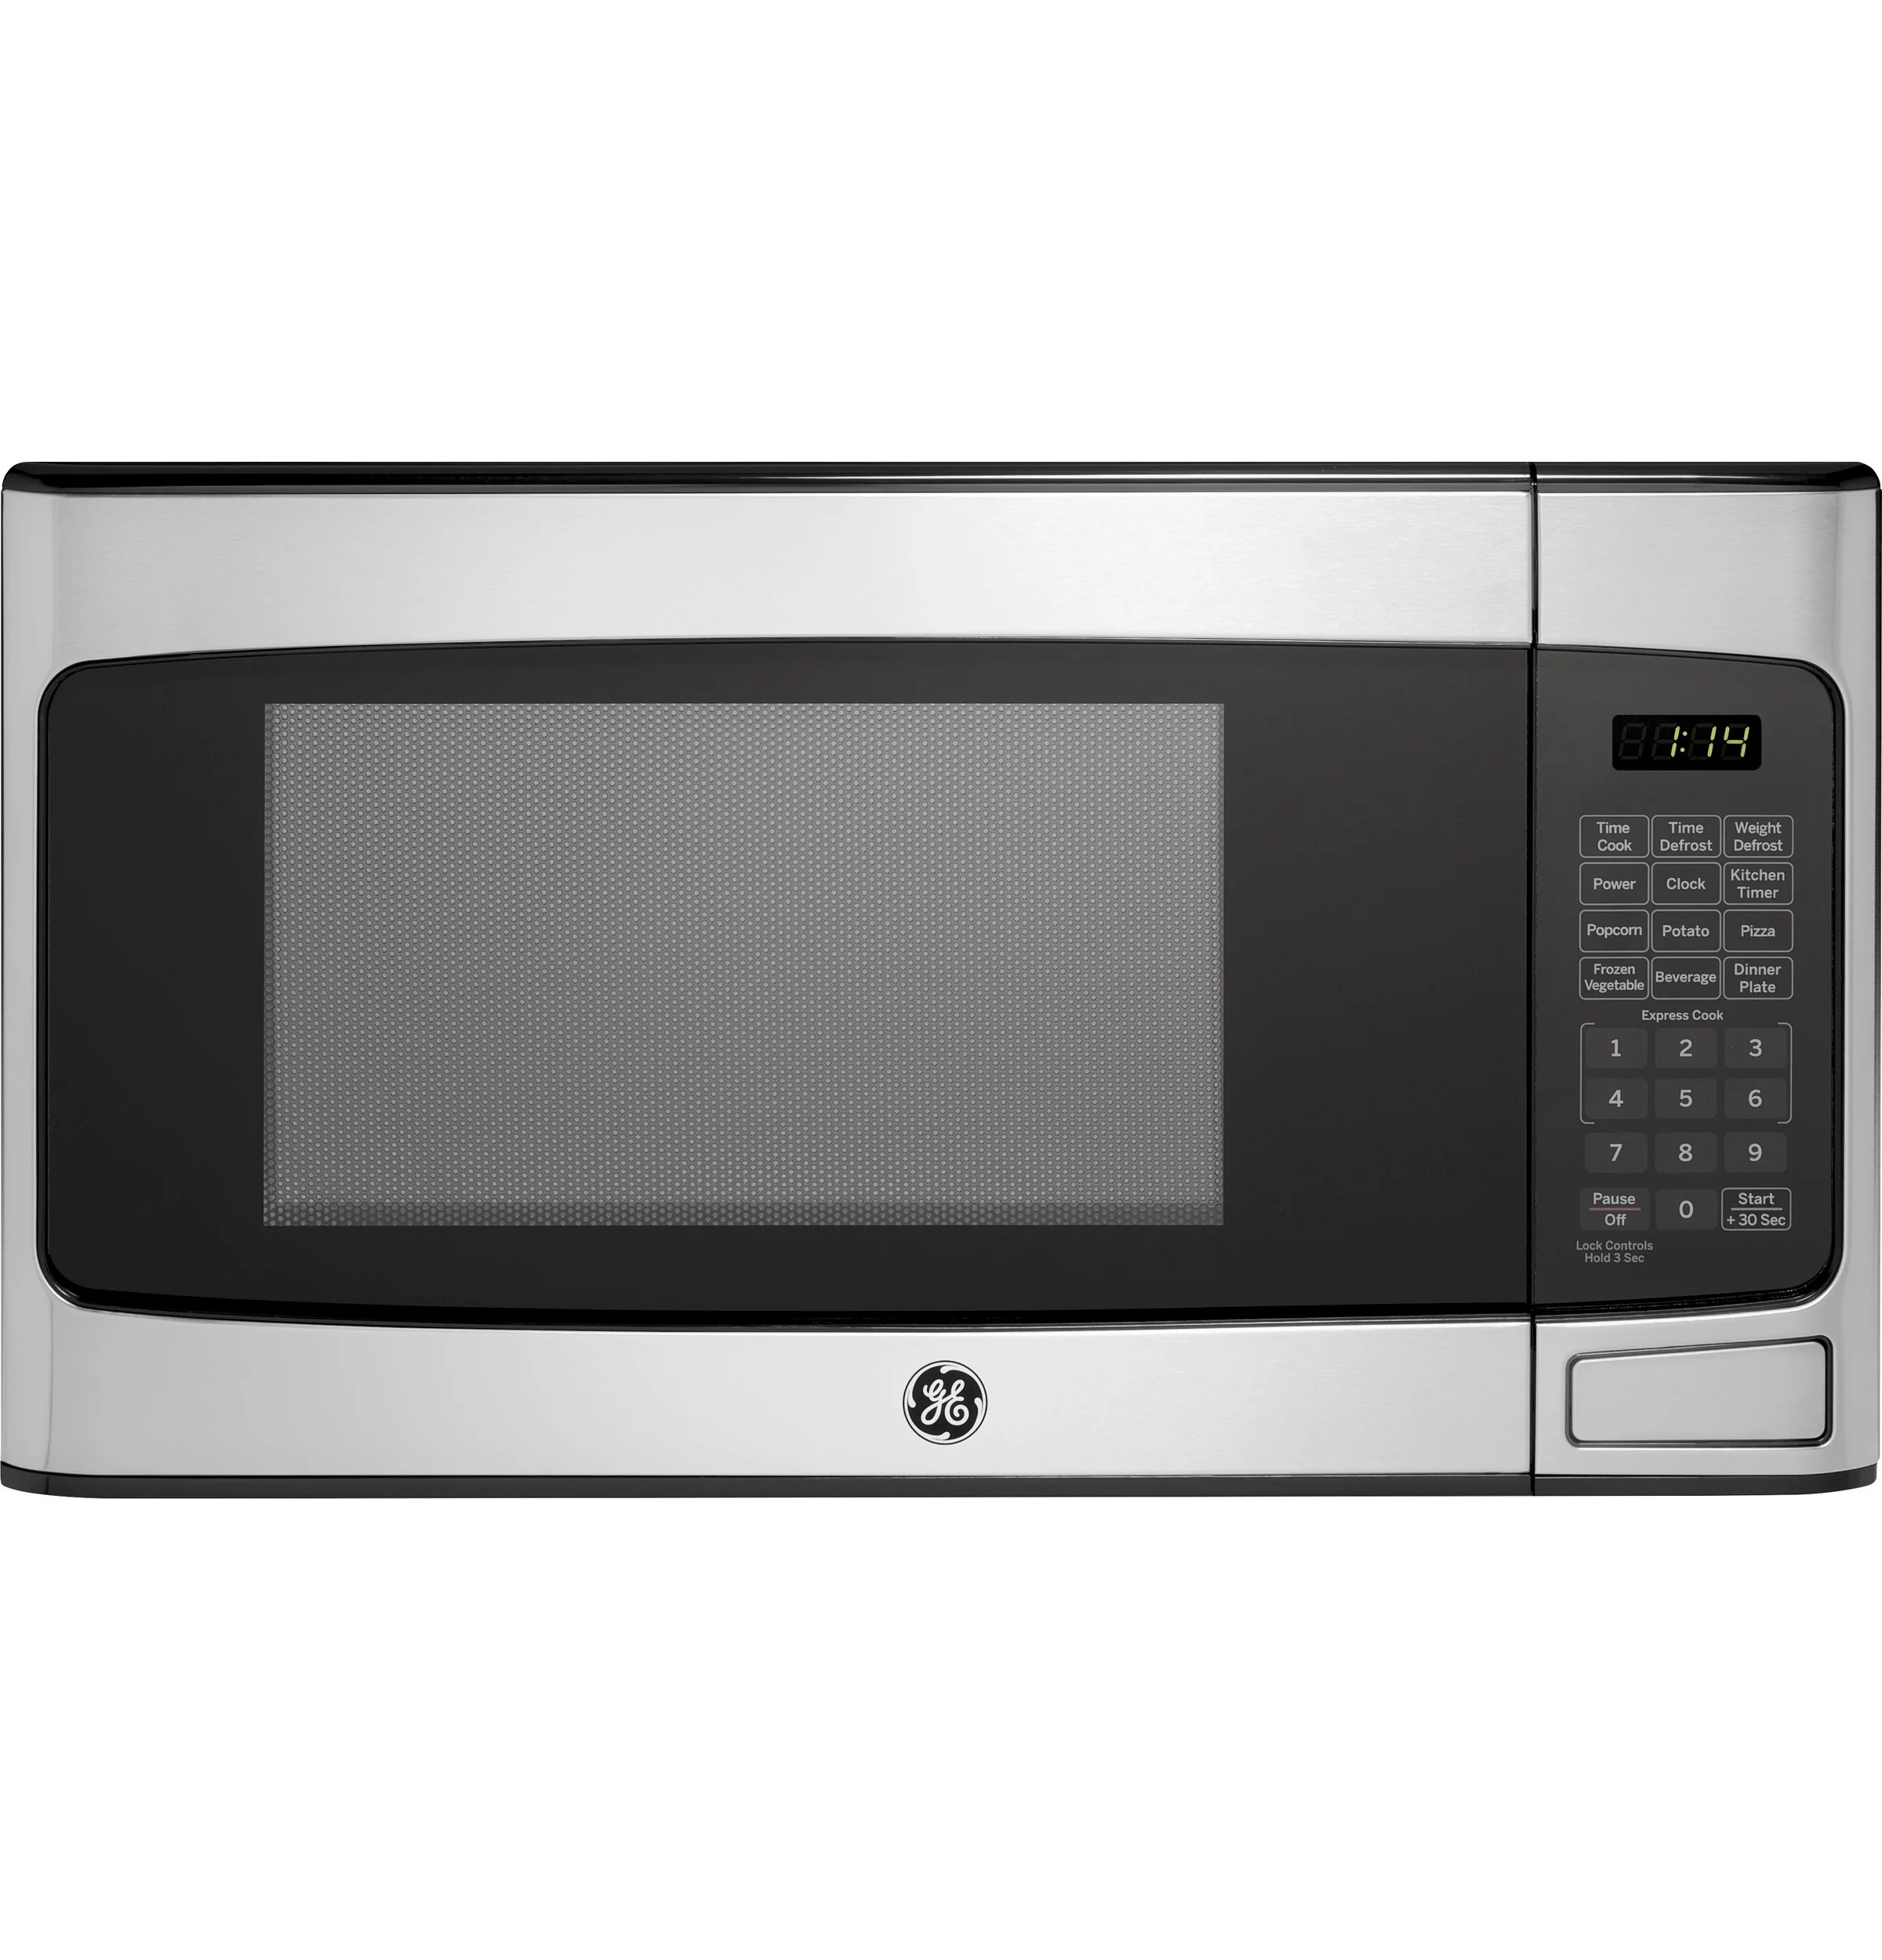 Lowes Countertop Microwaves General Electric 1 1 Cu Ft Countertop Stainless Steel Microwave Oven